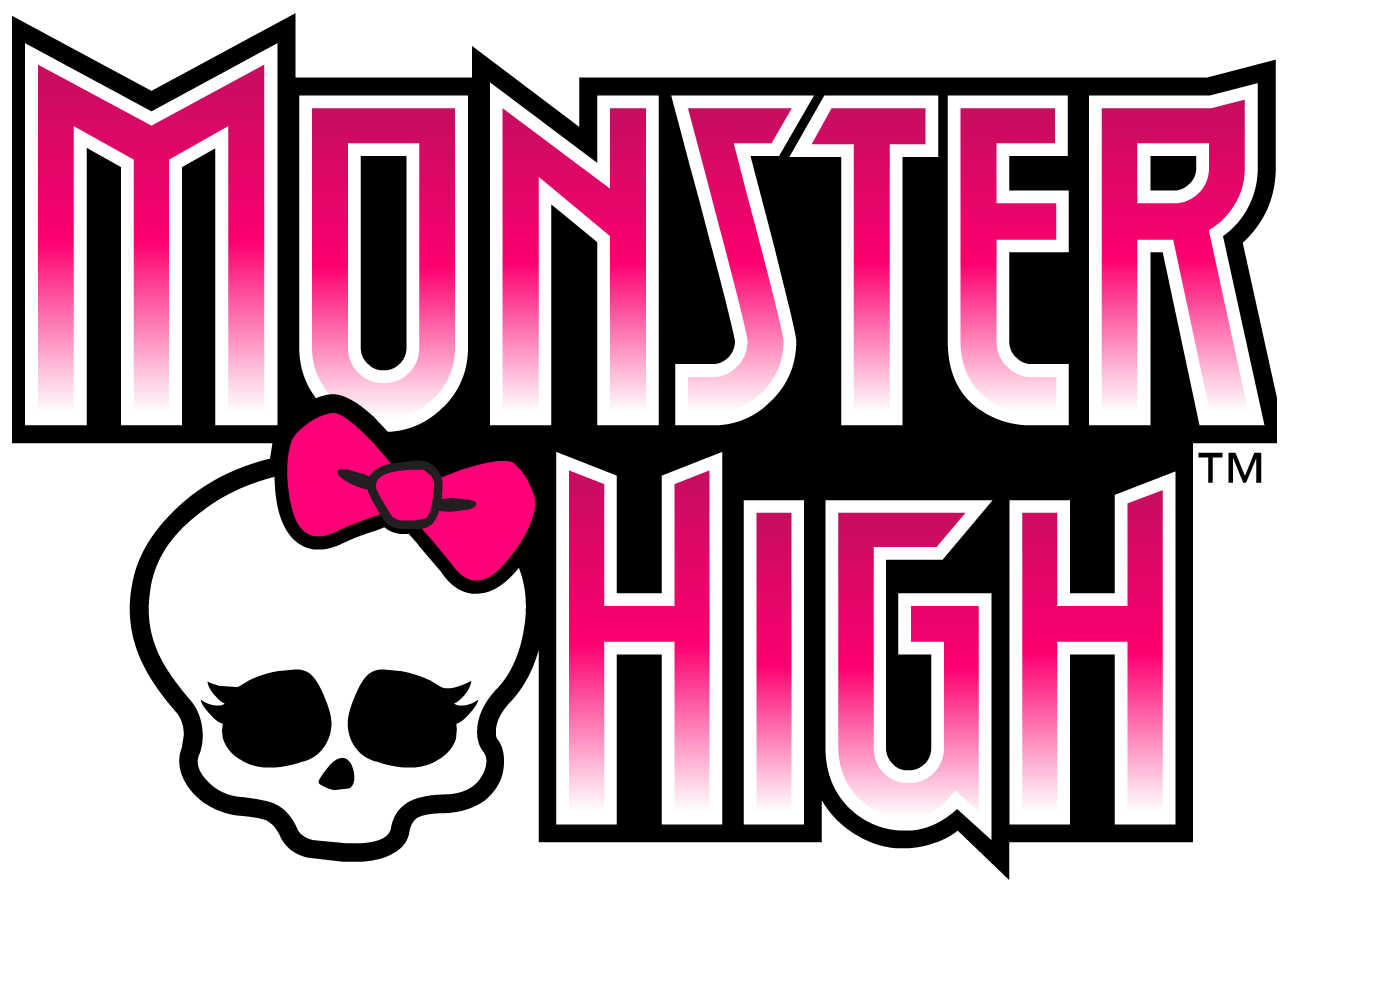 http://vignette4.wikia.nocookie.net/monsterhigh/images/9/92/Monster-high.png/revision/latest?cb=20140303045329&path-prefix=es